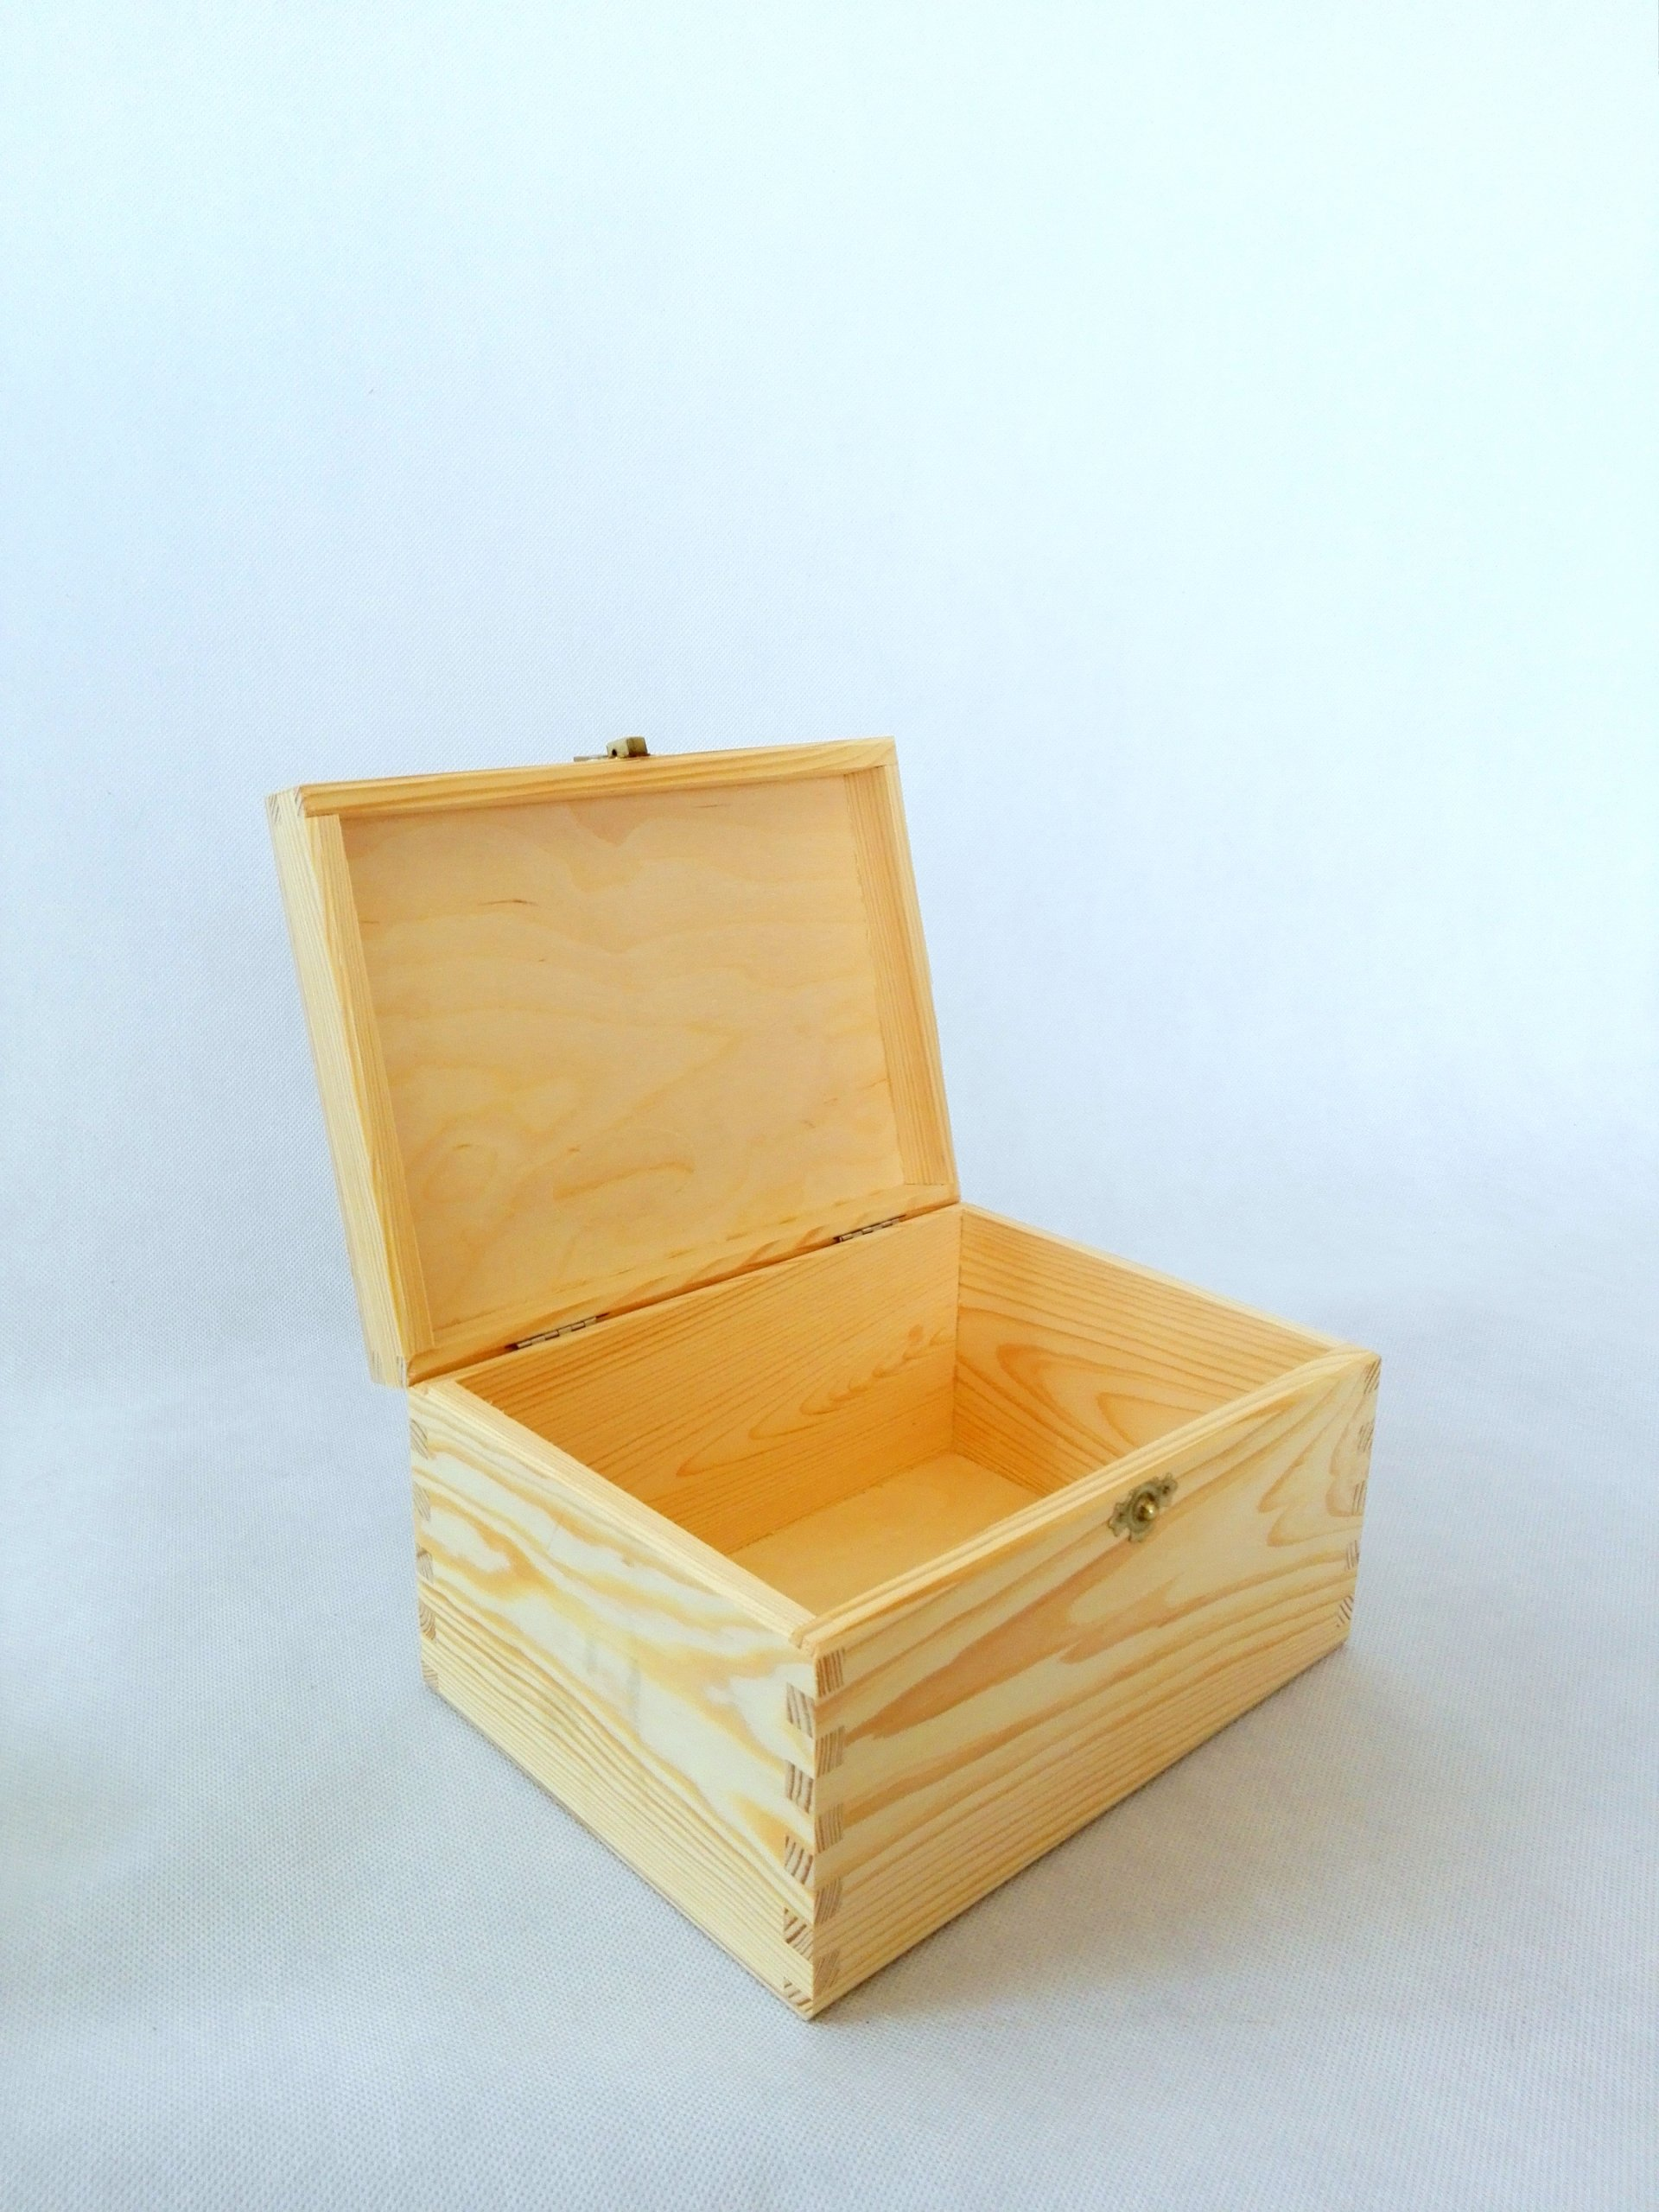 Wooden box with clasp